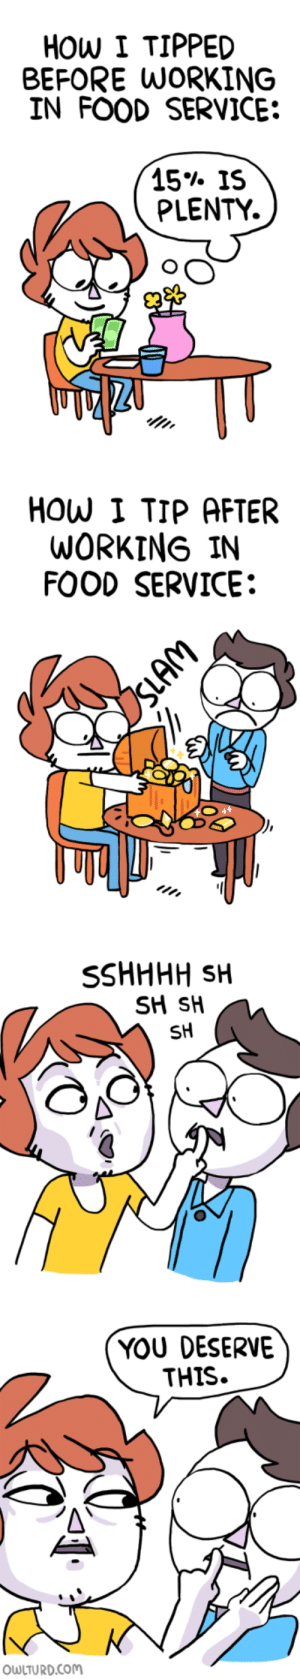 omg-images:  I understand now.: HOW I TIPPED  BEFORE WORKING  IN FOOD SERVICE:  15% IS  PLENTY.  se  HOW I TIP AFTER  WORKING IN  FOOD SERVICE:  SH SH  SH  YOU DESERVE  THIS.  OWLTURD.coM omg-images:  I understand now.